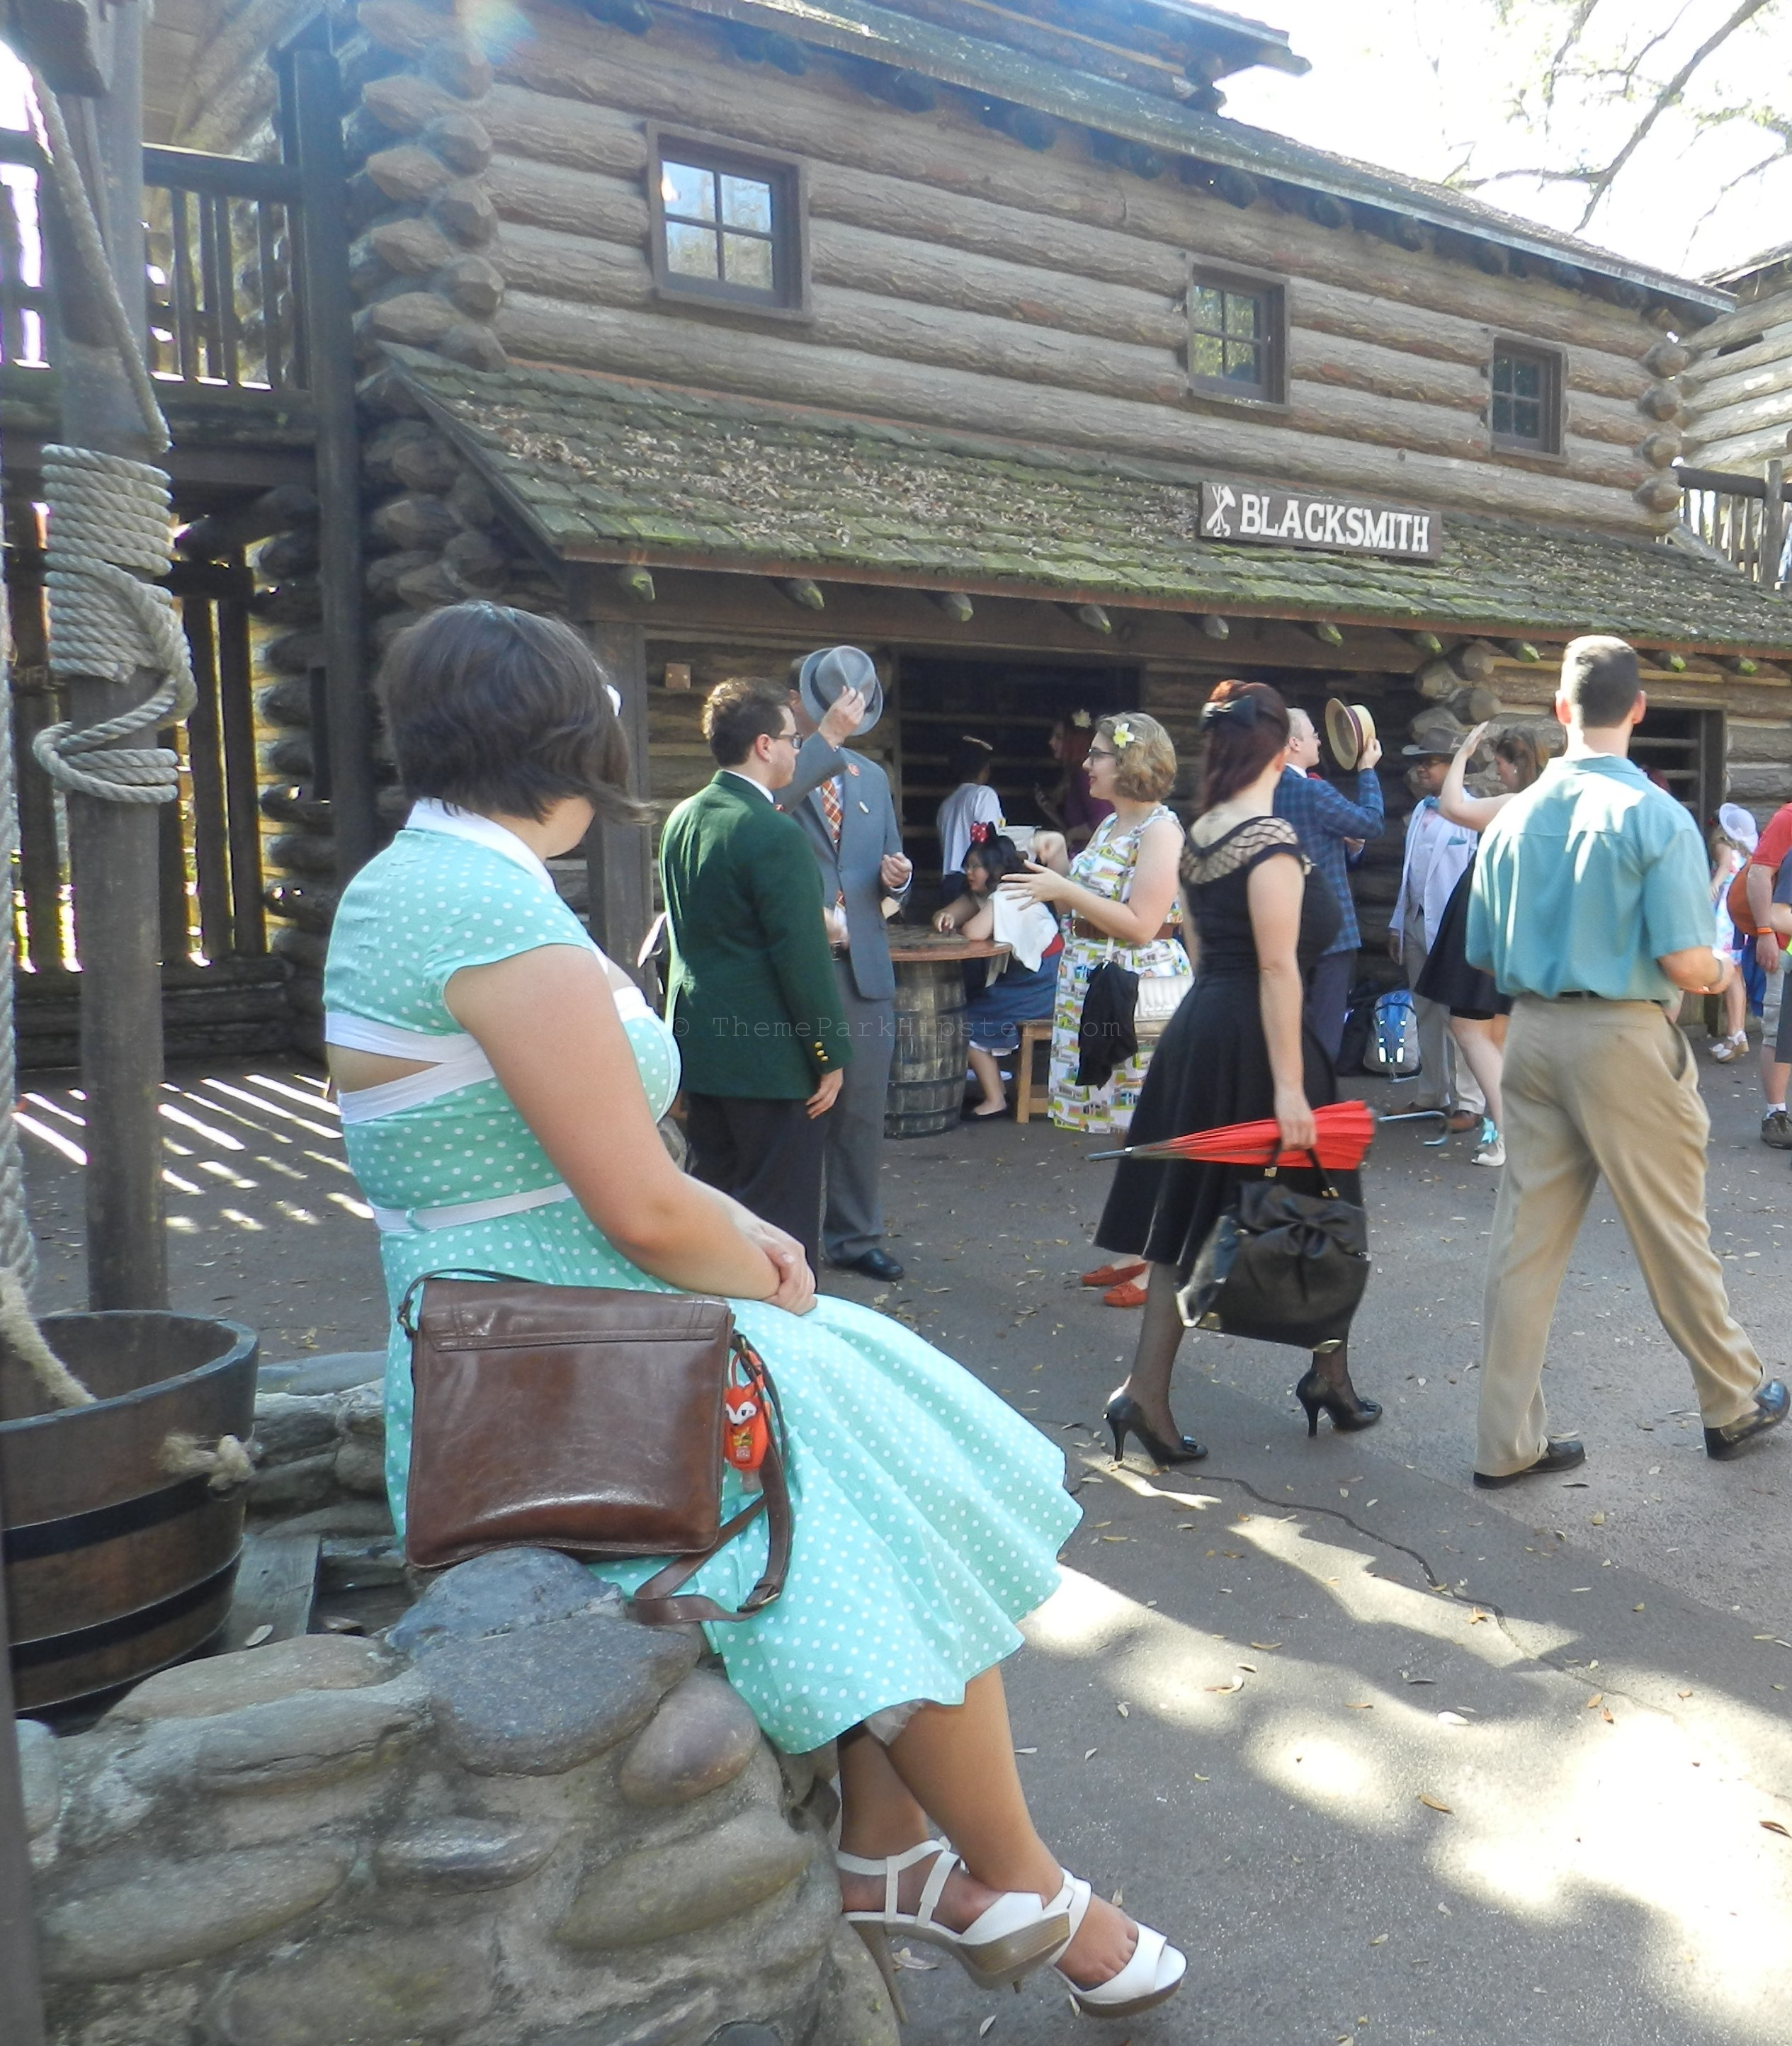 Tom Sawyer Island Dapper Day at the Magic Kingdom